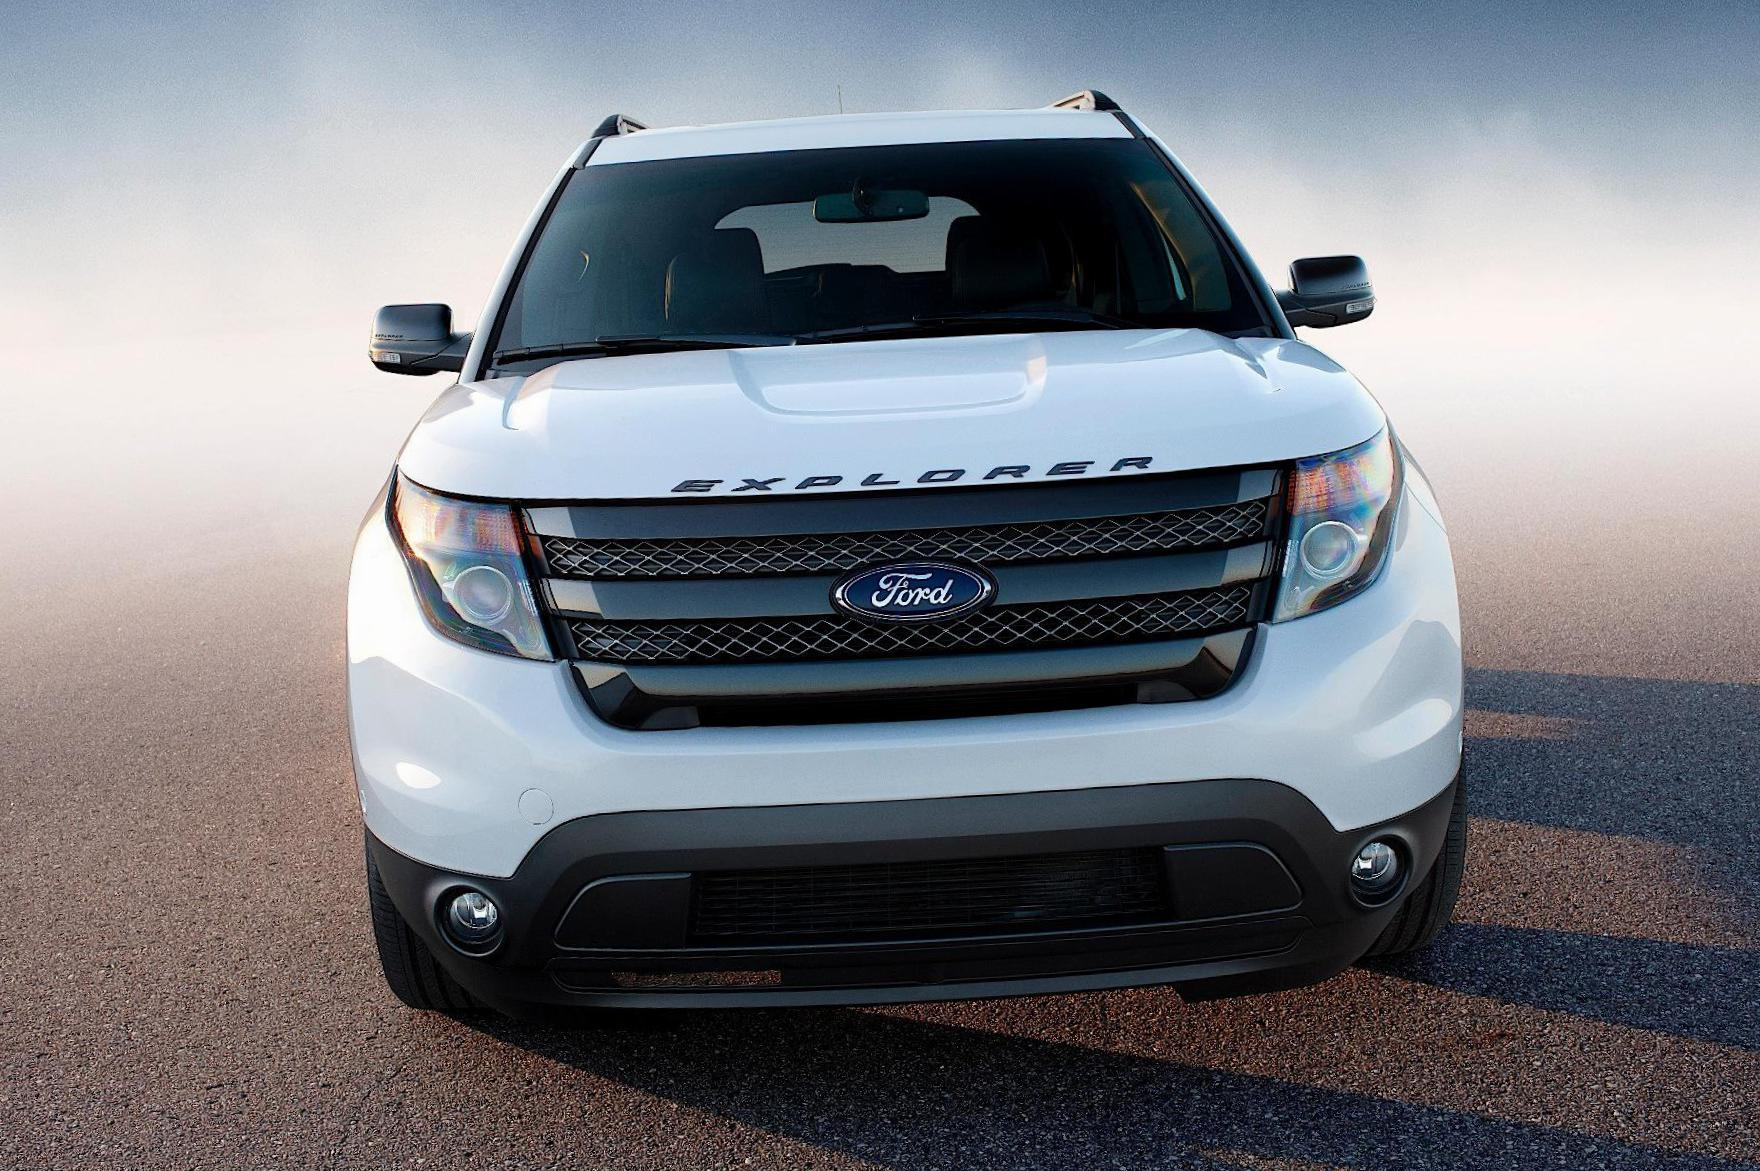 Explorer Ford Specification 2011